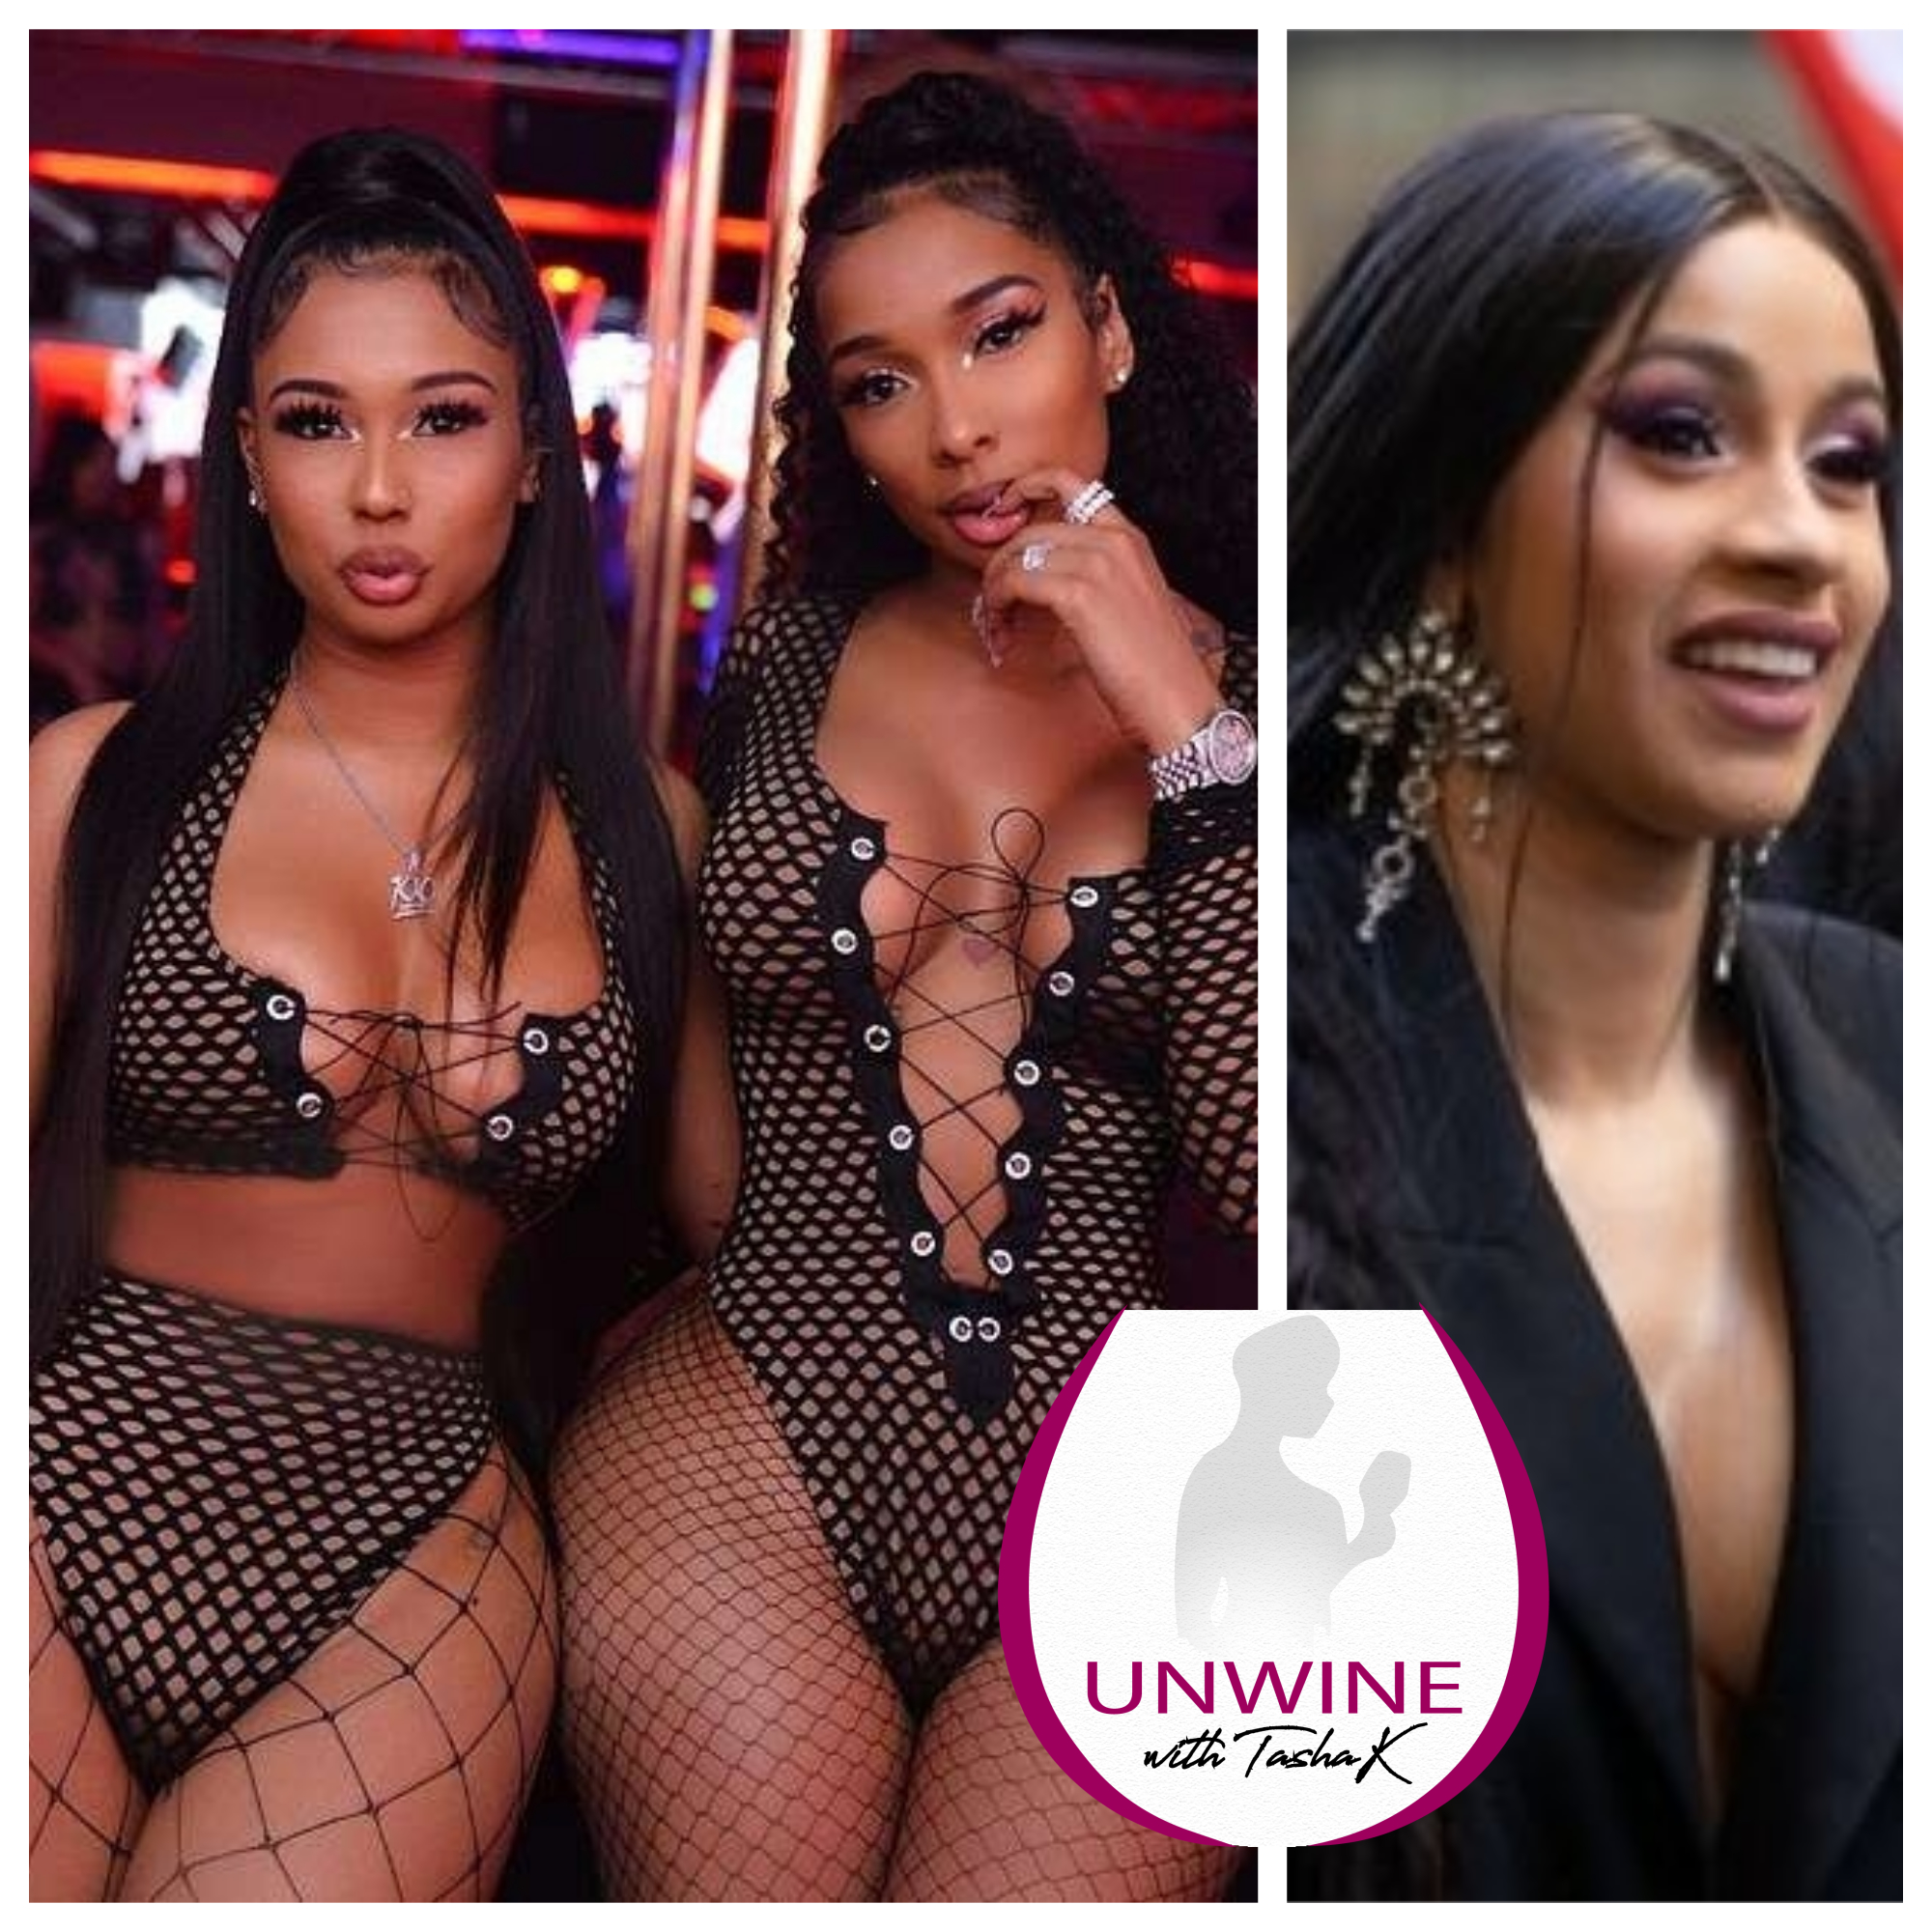 Sister Bartenders Who Accused Cardi B. In Strip Club Fight Banned From Club (2).jpg